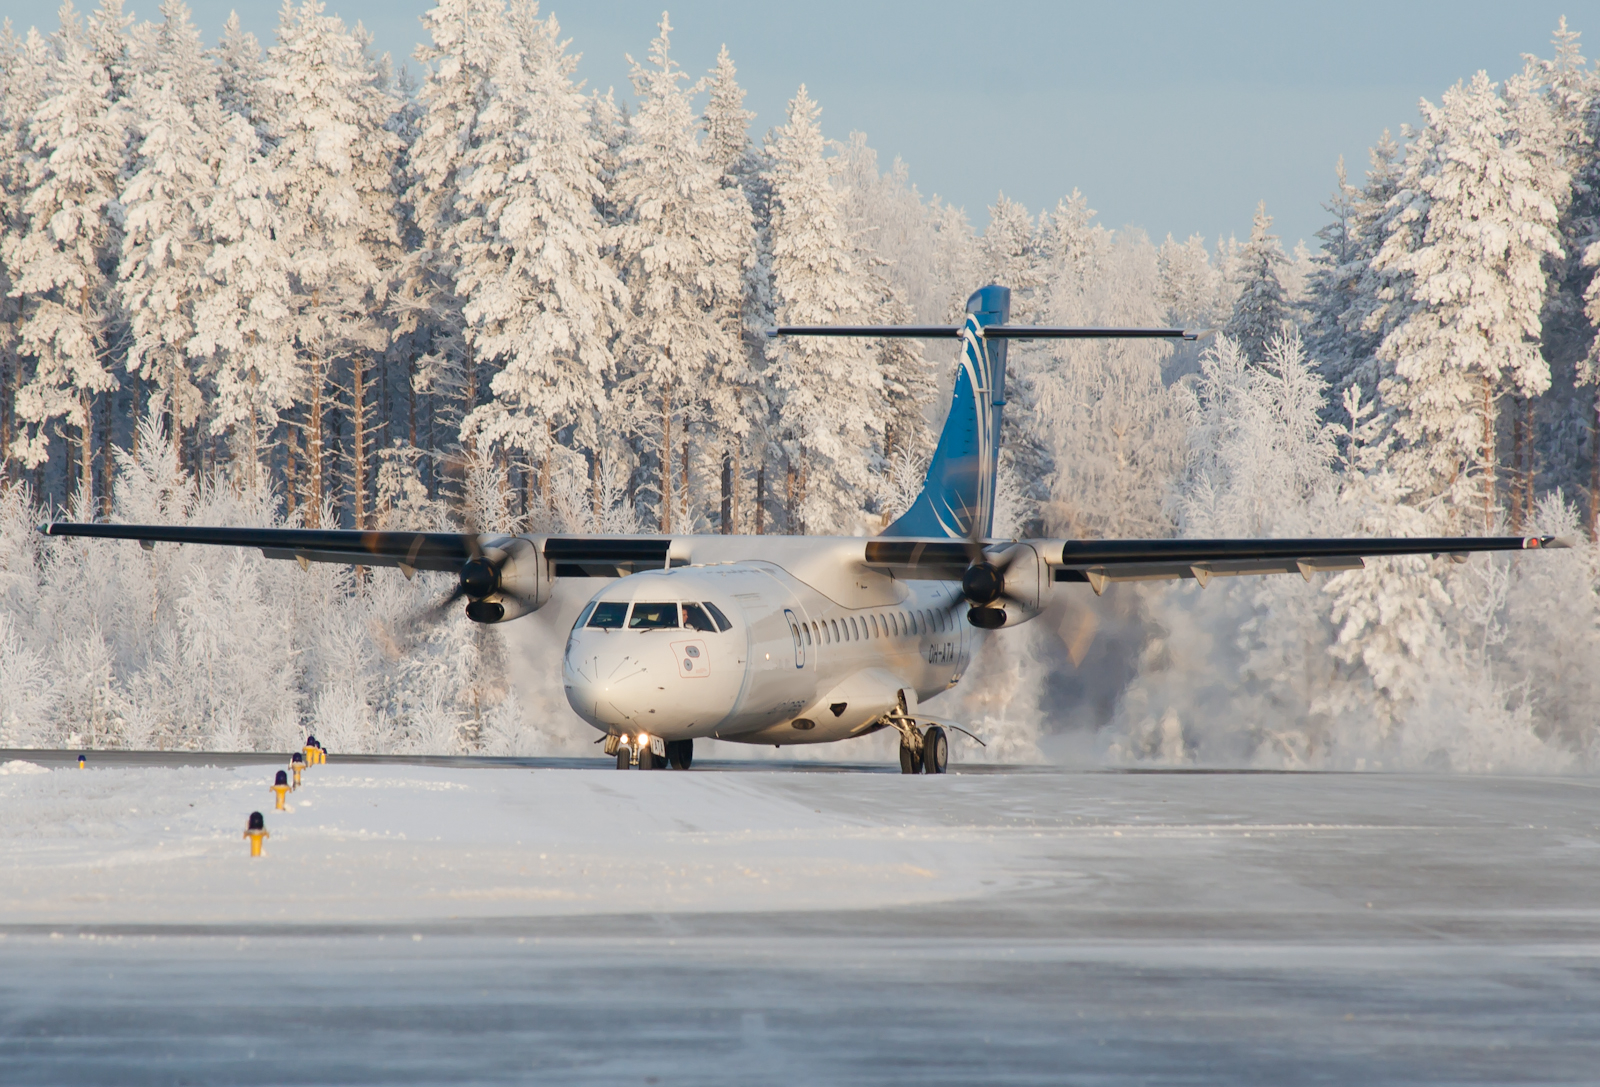 ATR42 Airplane In the Snow